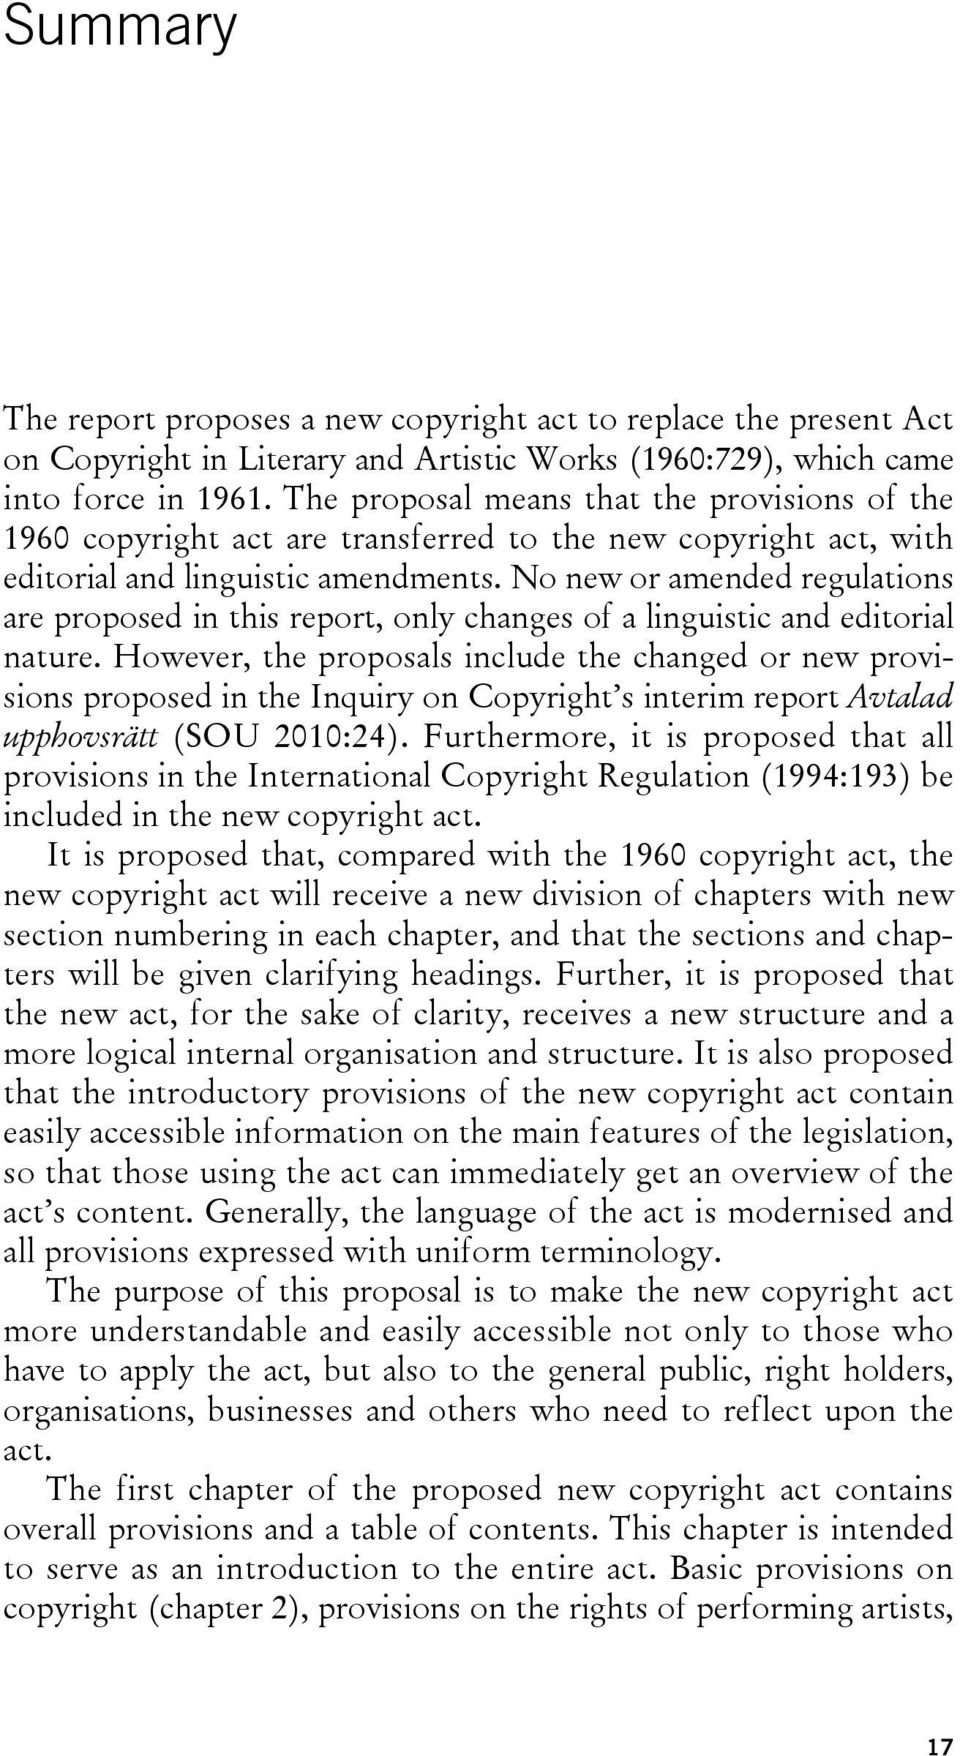 No new or amended regulations are proposed in this report, only changes of a linguistic and editorial nature.